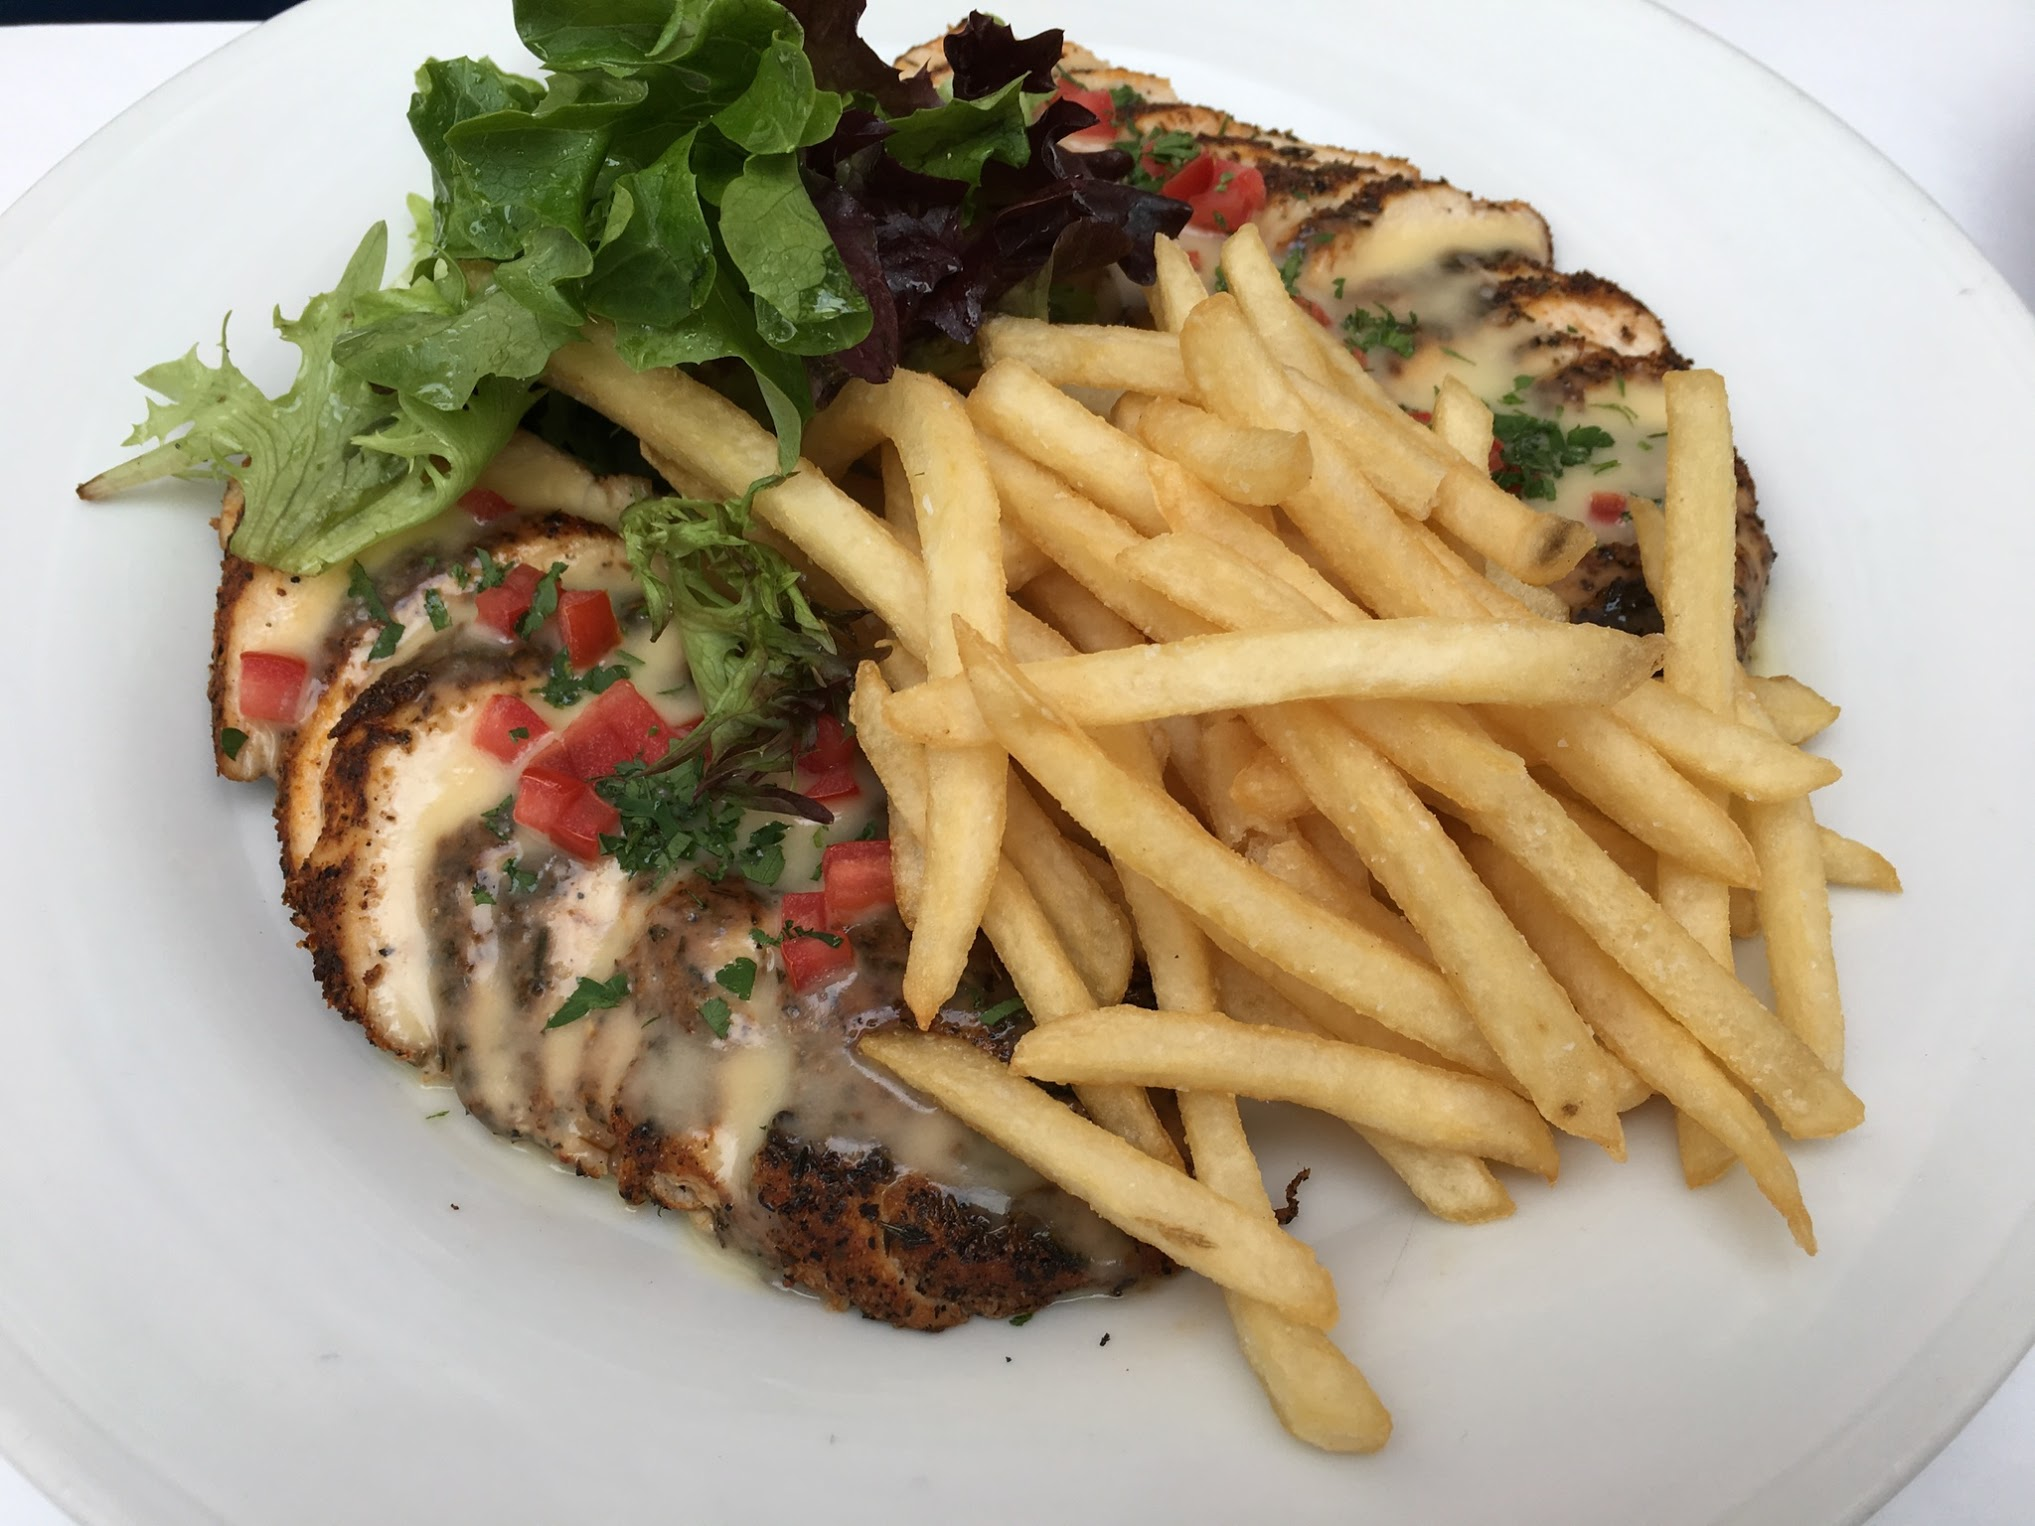 A close-up photo of the Cajun chicken dish at Le Bilboquet, which consists of sliced chicken piece underneath a bed of fries with salad behind the fries